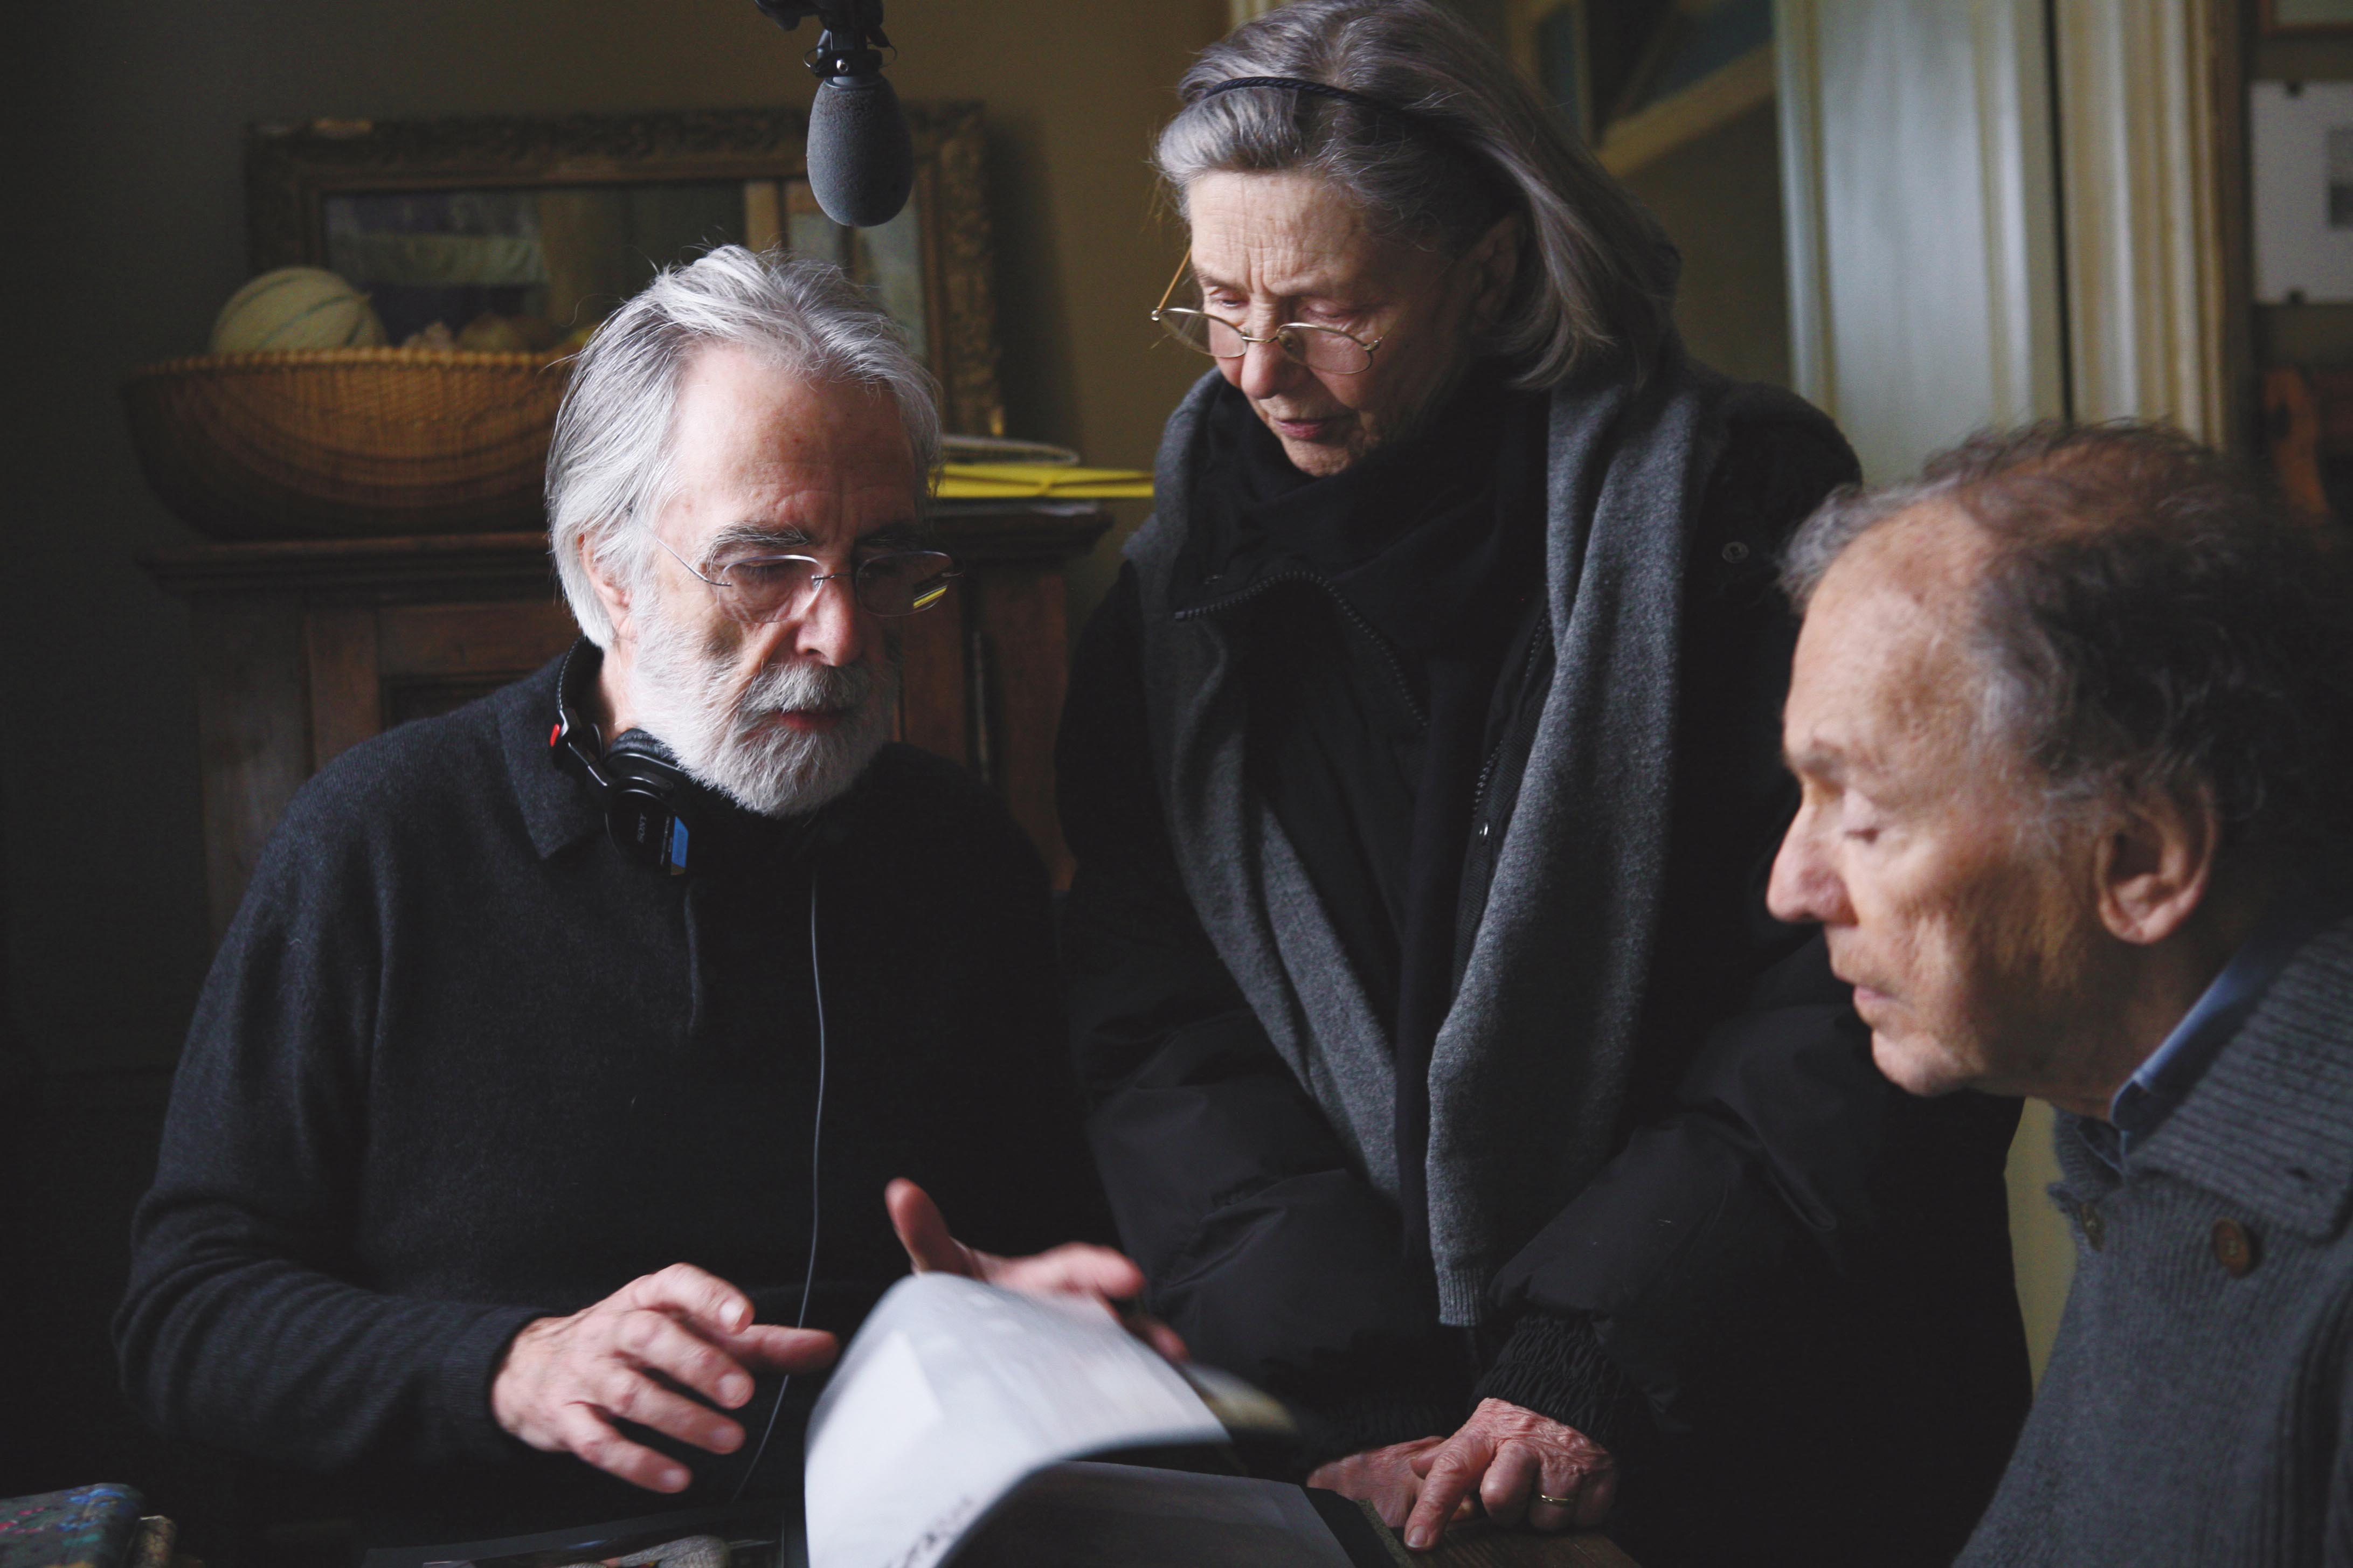 No Merchandising. Editorial Use Only. No Book Cover Usage. Mandatory Credit: Photo by Wega Film/Kobal/REX/Shutterstock (5881781d) Michael Haneke, Emmanuelle Riva, Jean-Louis Trintignant Amour - 2012 Director: Michael Haneke Wega Film AUSTRIA / FRANCE On/Off Set